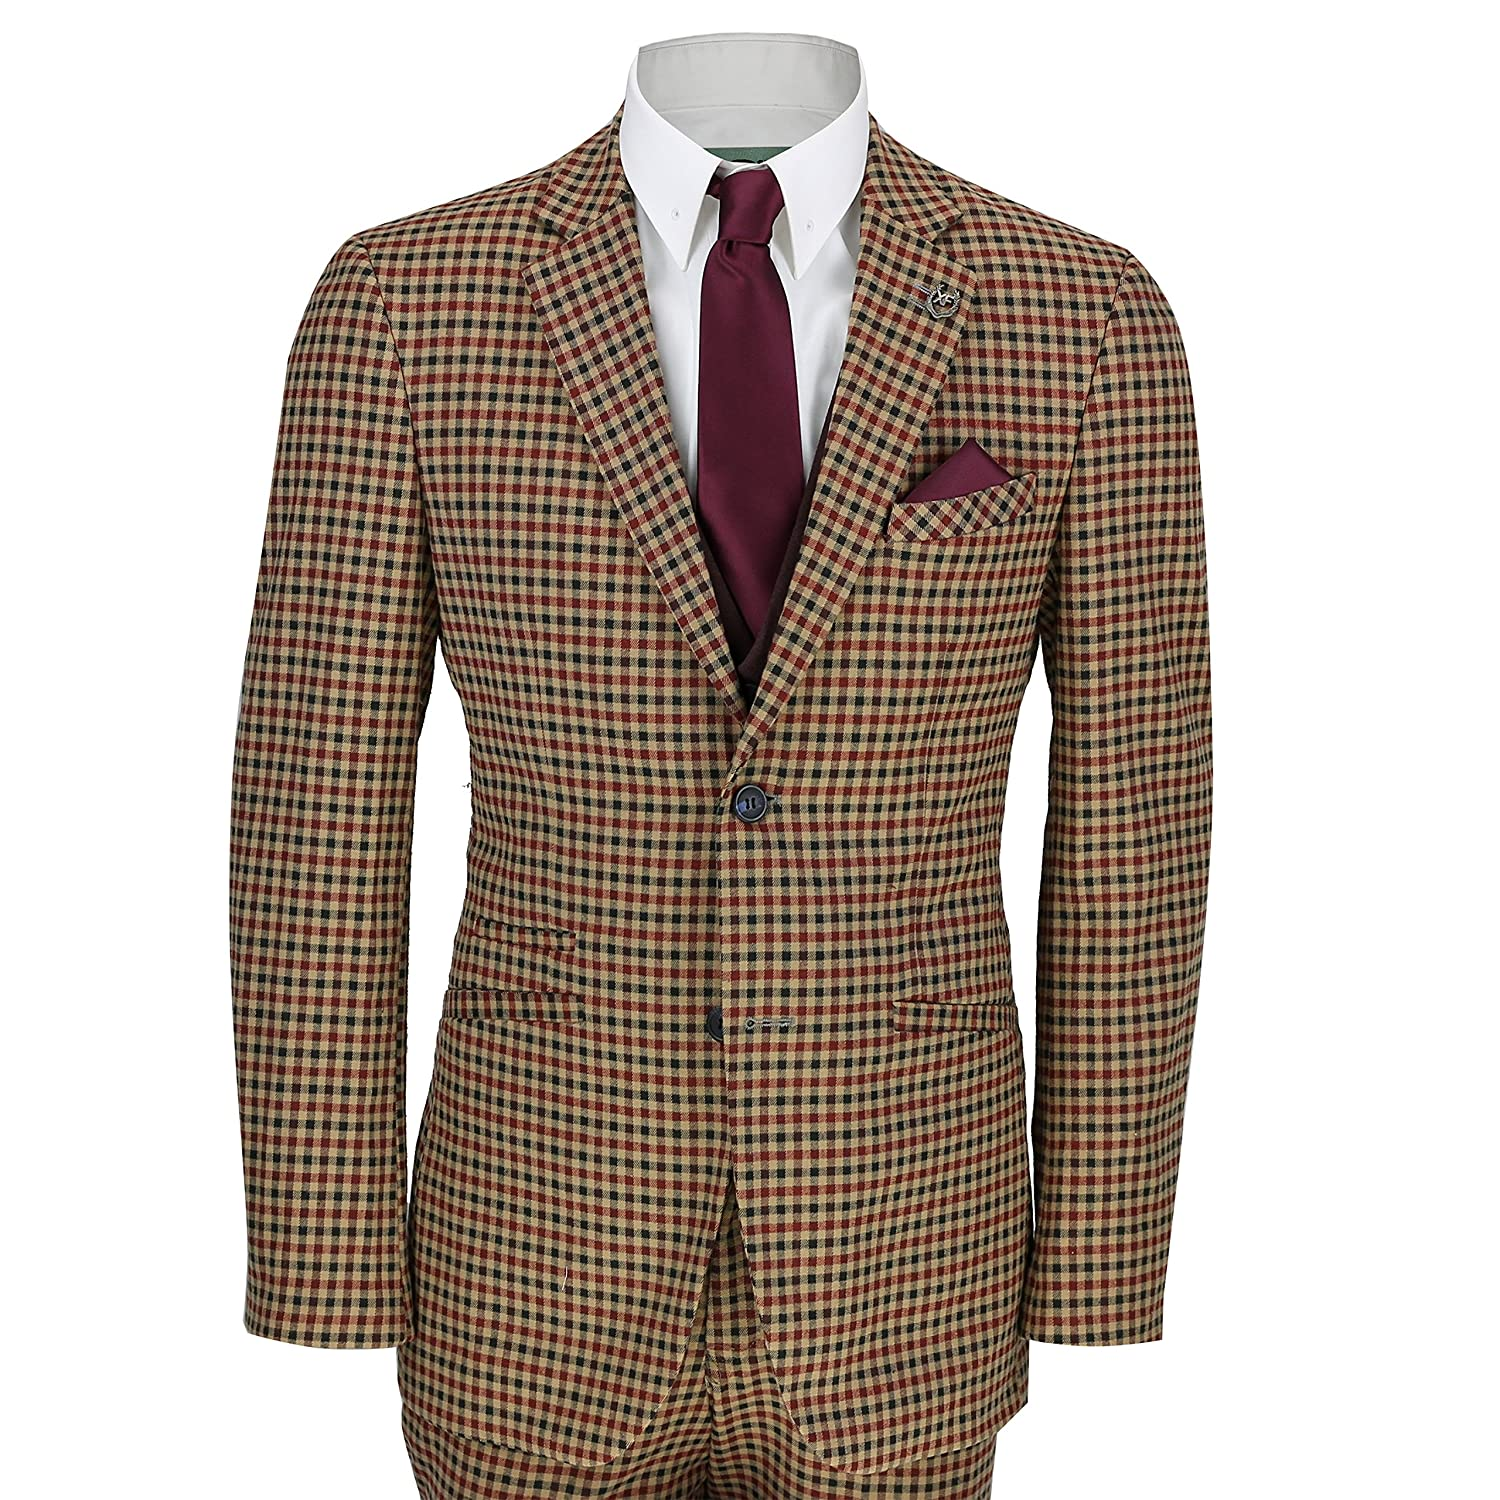 1920s Men's Clothing Xposed Mens Vintage 3 Piece Plaid Tartan Check Slim Tailored Fit Suit Jacket Waistcoat Trouser £104.99 AT vintagedancer.com